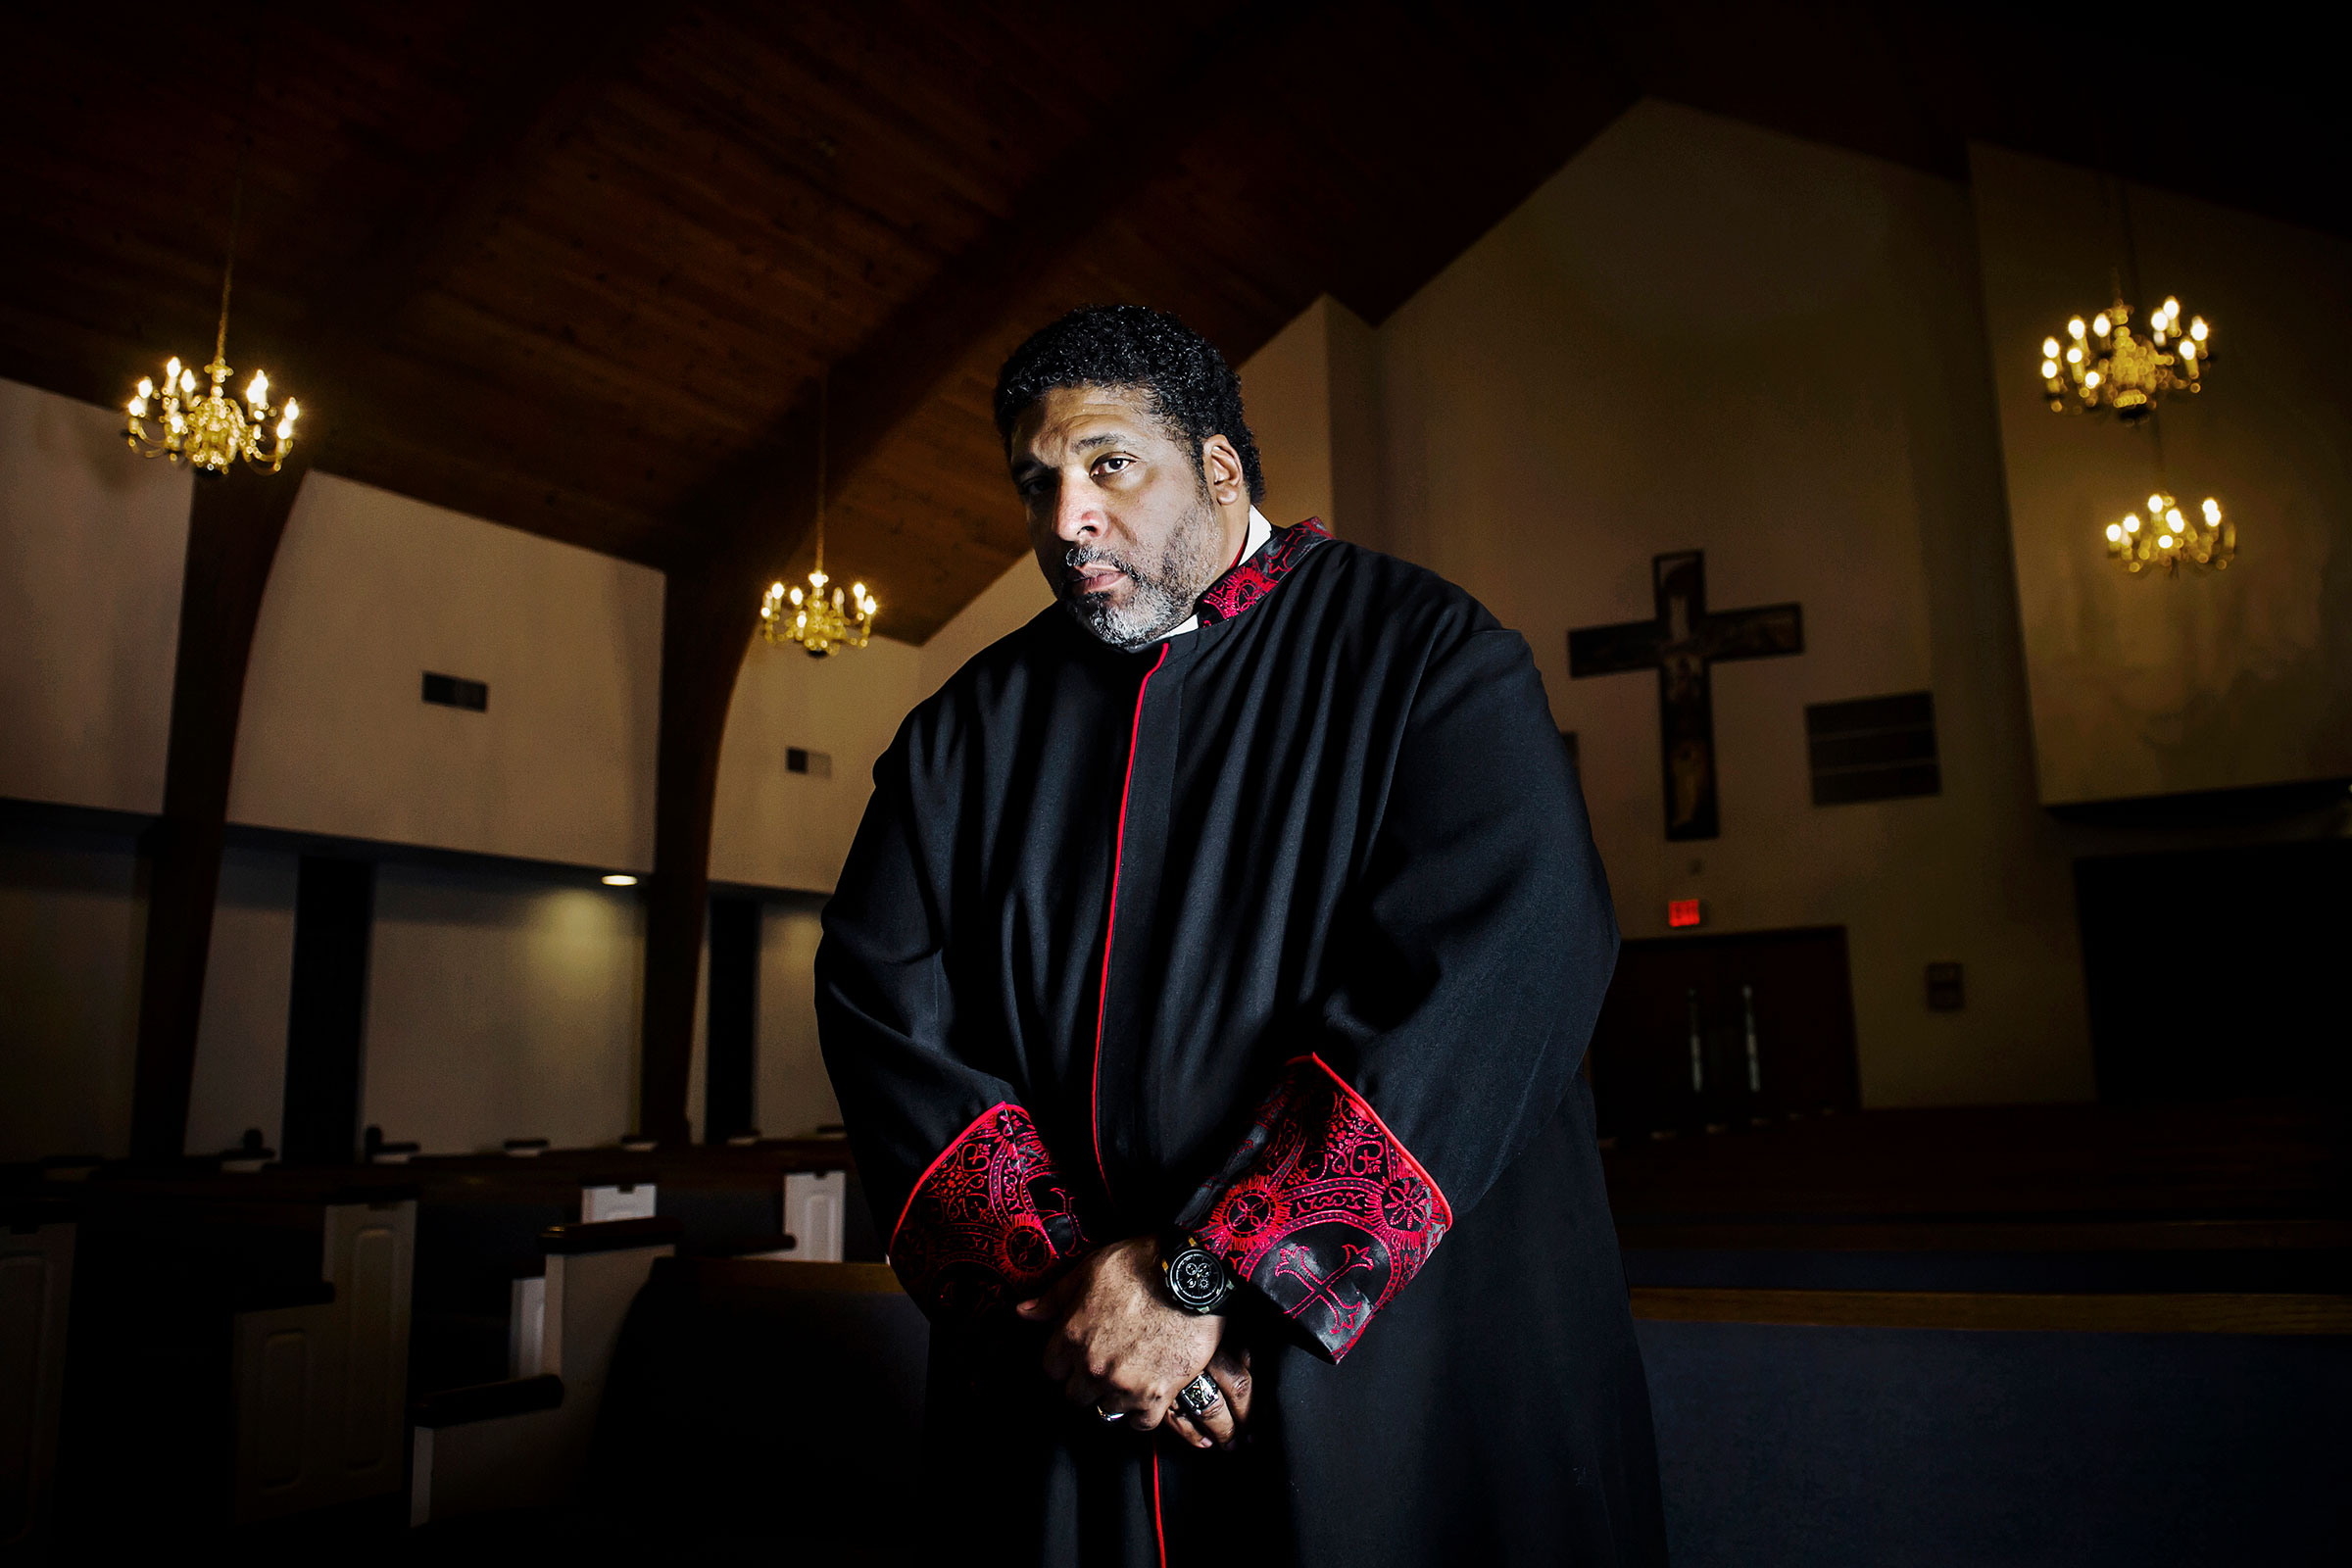 Reverend William J. Barber II at the Greenleaf Christian Church in Goldsboro, NC., 2017.